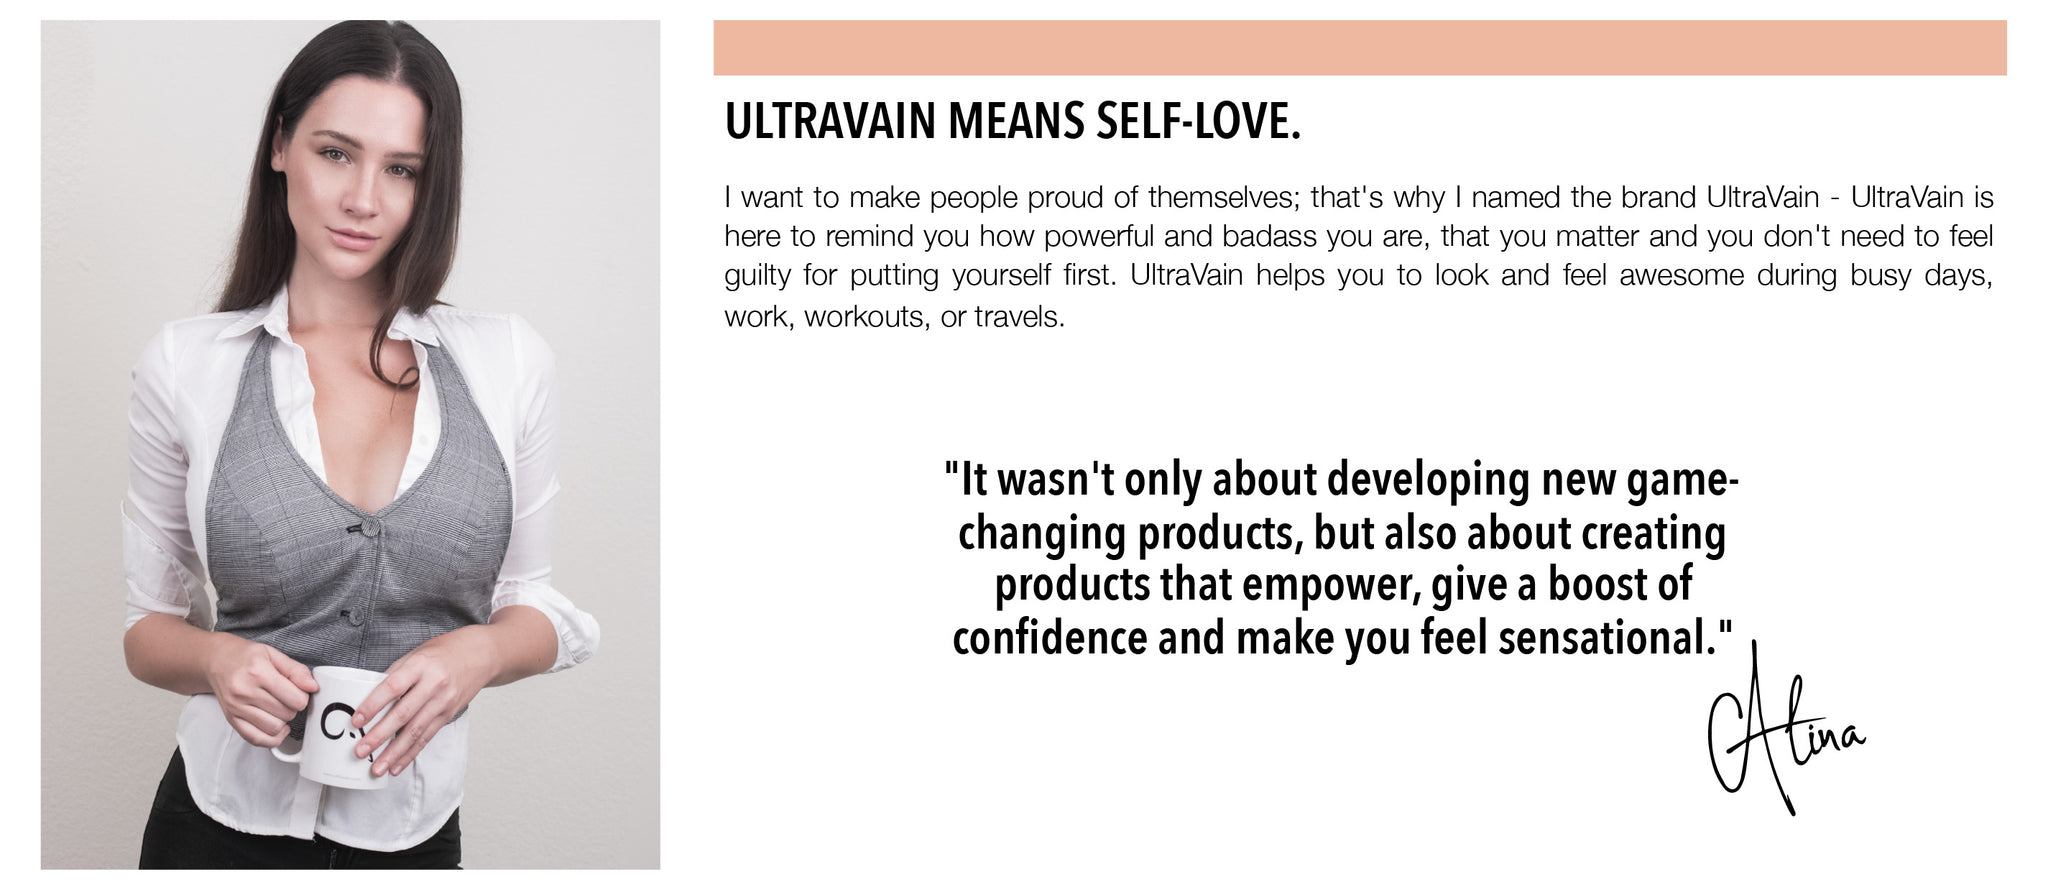 I want to make people proud of themselves; that's why I named the brand UltraVain - UltraVain is here to remind you how powerful and badass you are, that you matter and you don't need to feel guilty for putting yourself first. UltraVain helps you to look and feel awesome during busy days, work, workouts, or travels.